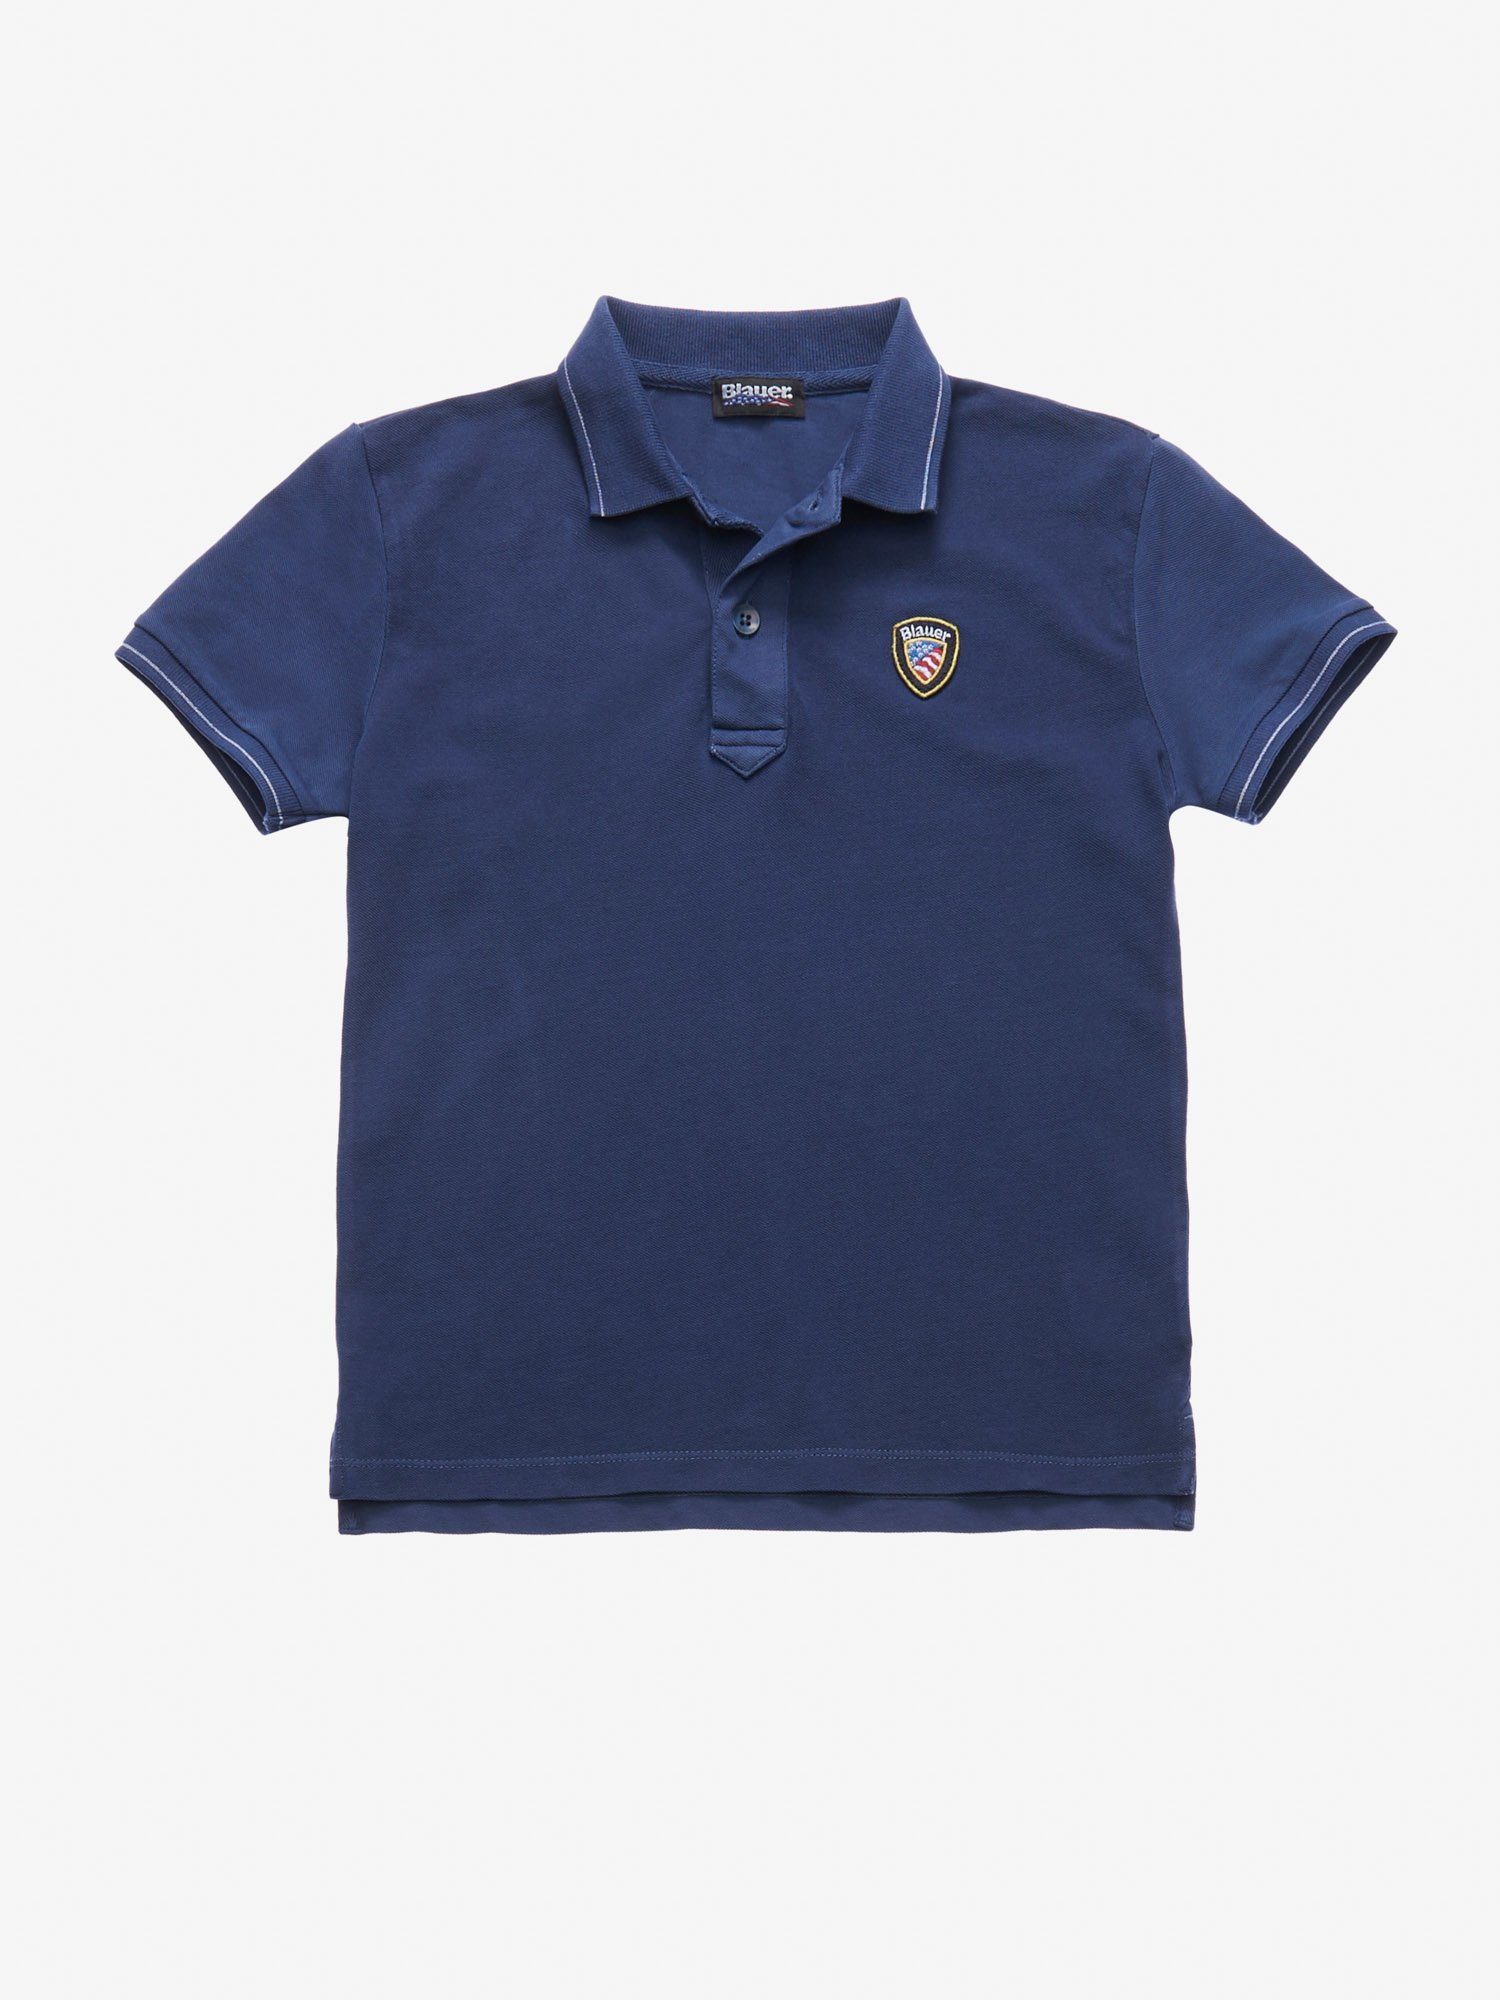 POLO JUNIOR MANICA CORTA - Blauer